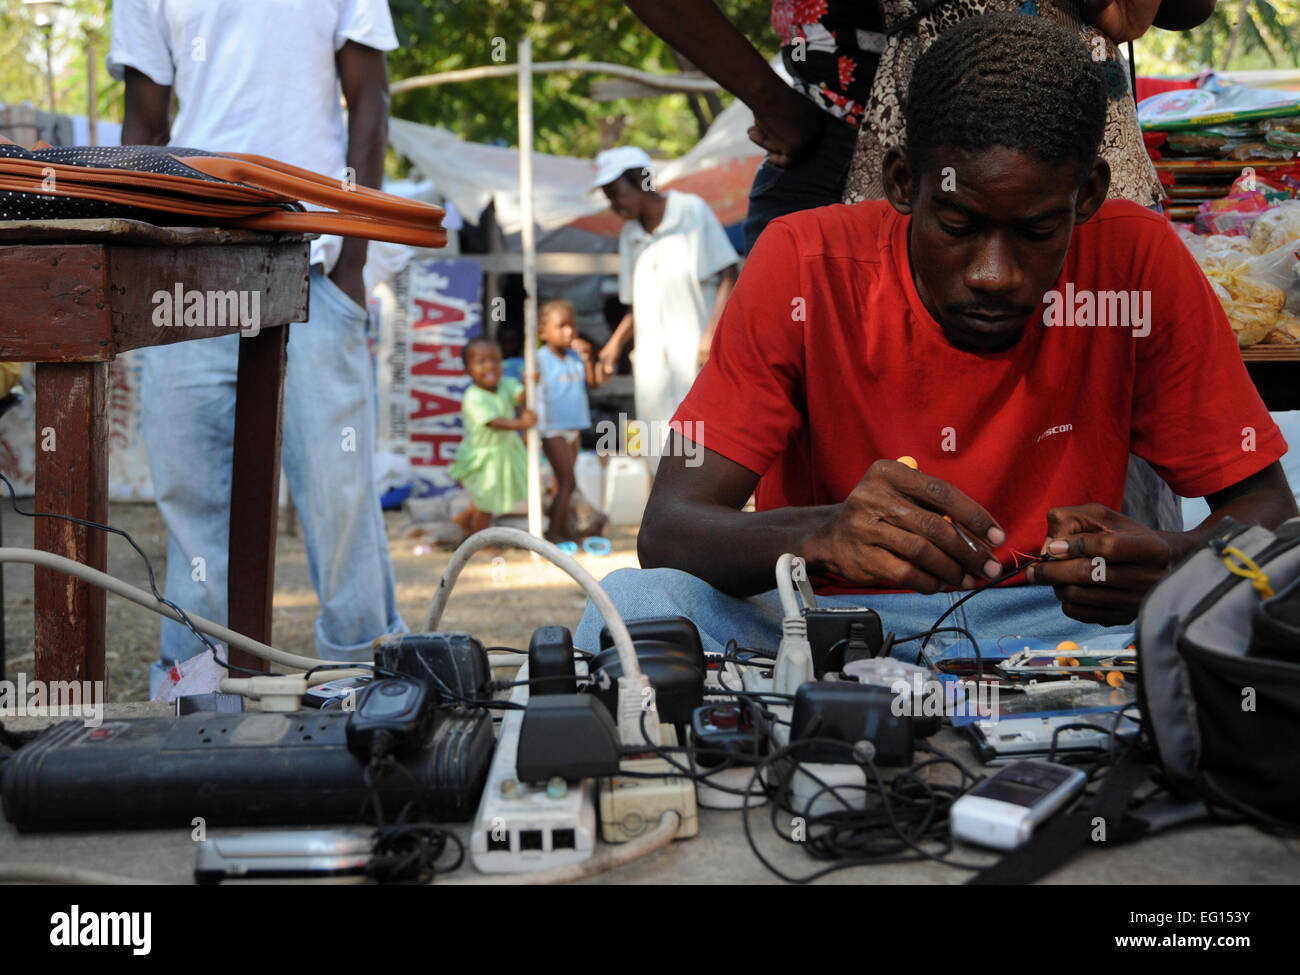 A displaced Haitians man fixes mobile phones in a tent city near, the Presidential Palace in Port au Prince, Haiti Stock Photo